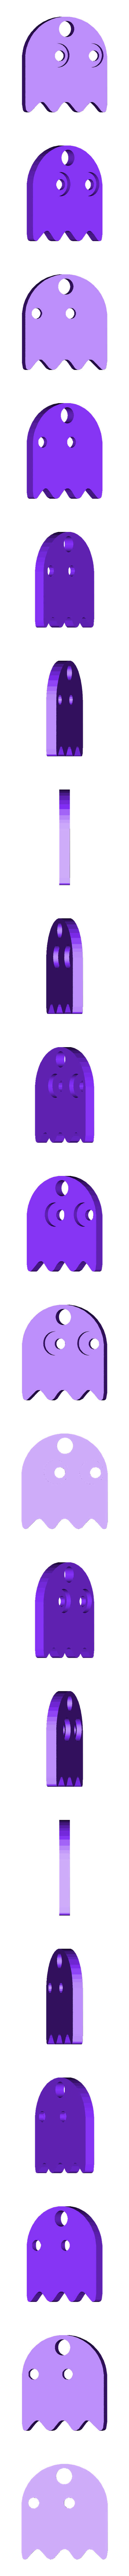 pacman-yellow-ghost.stl Download free 3MF file Pacman and Ghost earrings • 3D printer template, JakG